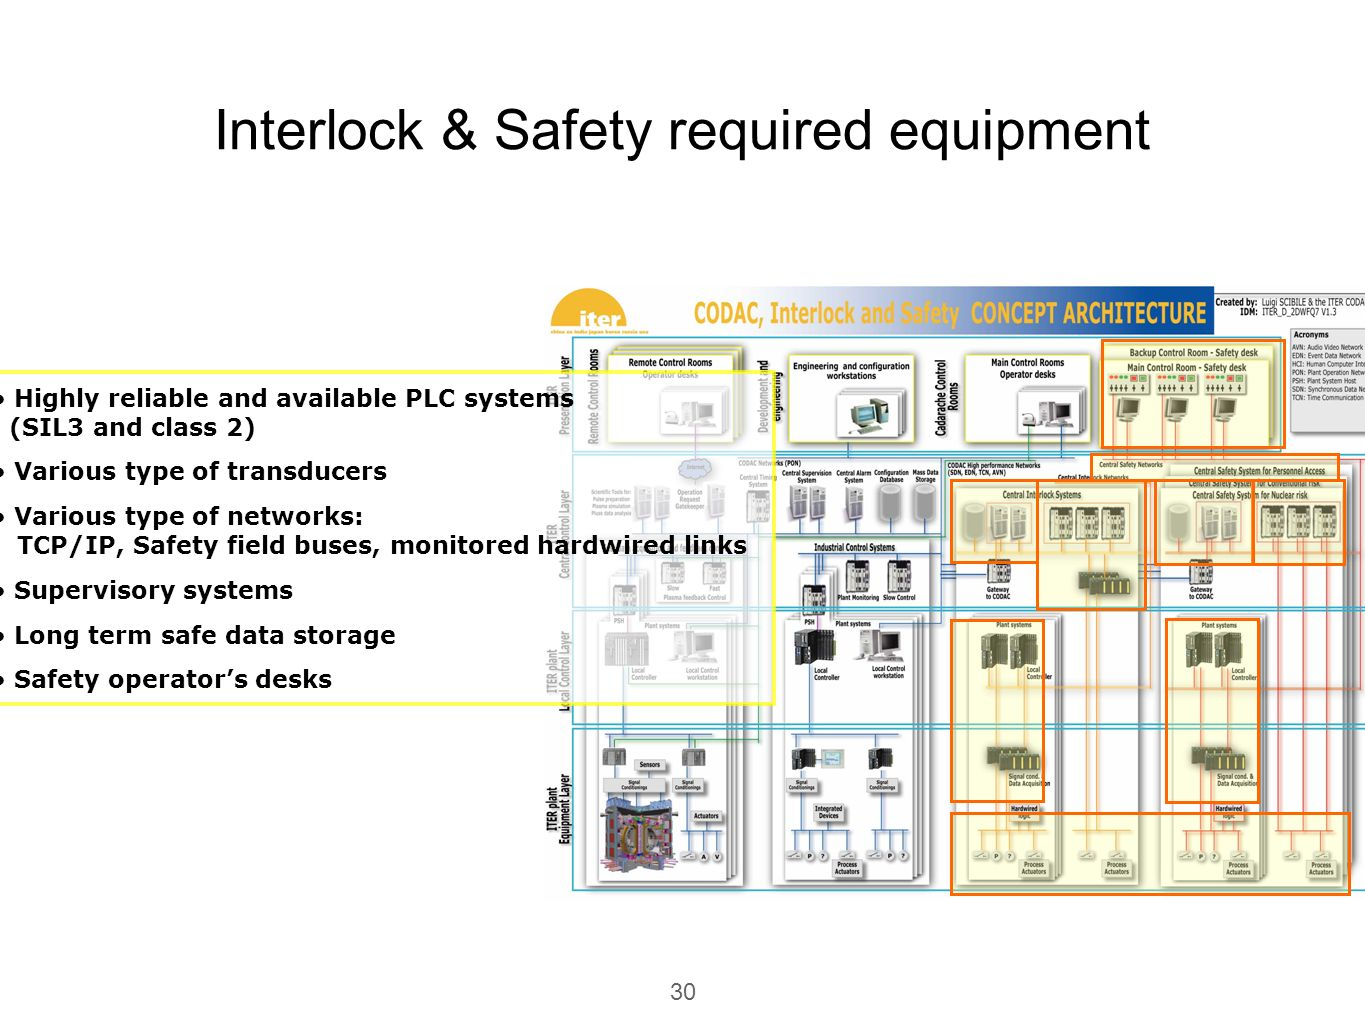 Interlock & Safety required equipment